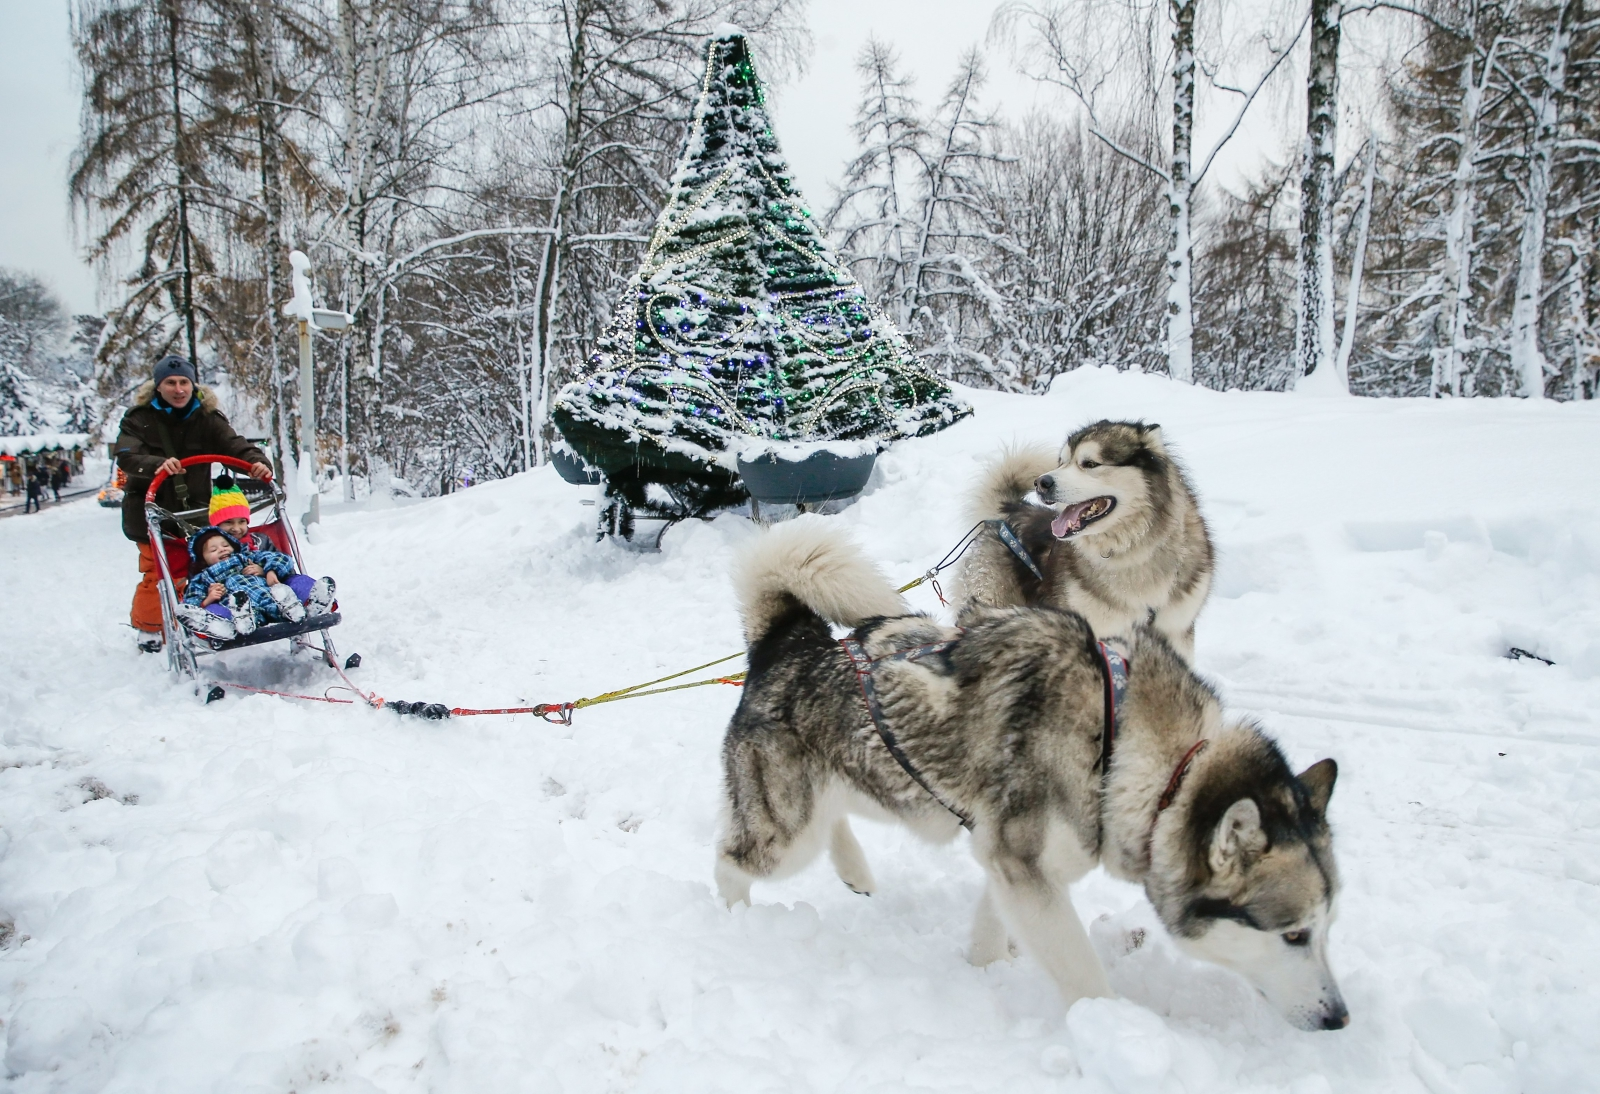 epa06401827 Ukrainians ride a dog sled during the 'Ice Age' festival in Kiev, Ukraine, 21 December 2017, as they prepare for the New Year celebration.  EPA/SERGEY DOLZHENKO Dostawca: PAP/EPA.